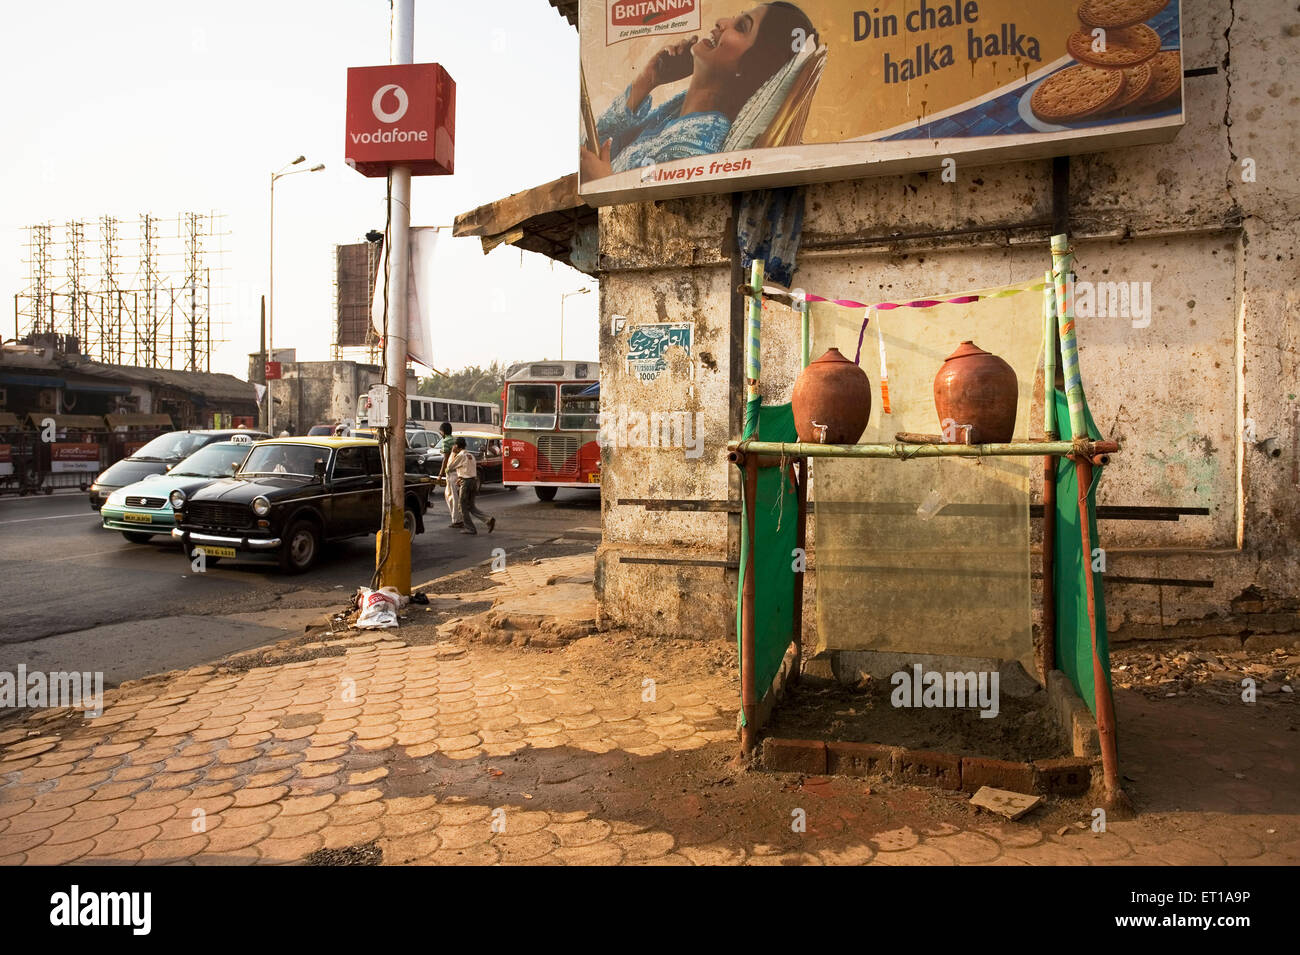 Drinking water pots on tenth day of muharram or ashura ; Bombay Mumbai ; Maharashtra ; India - Stock Image